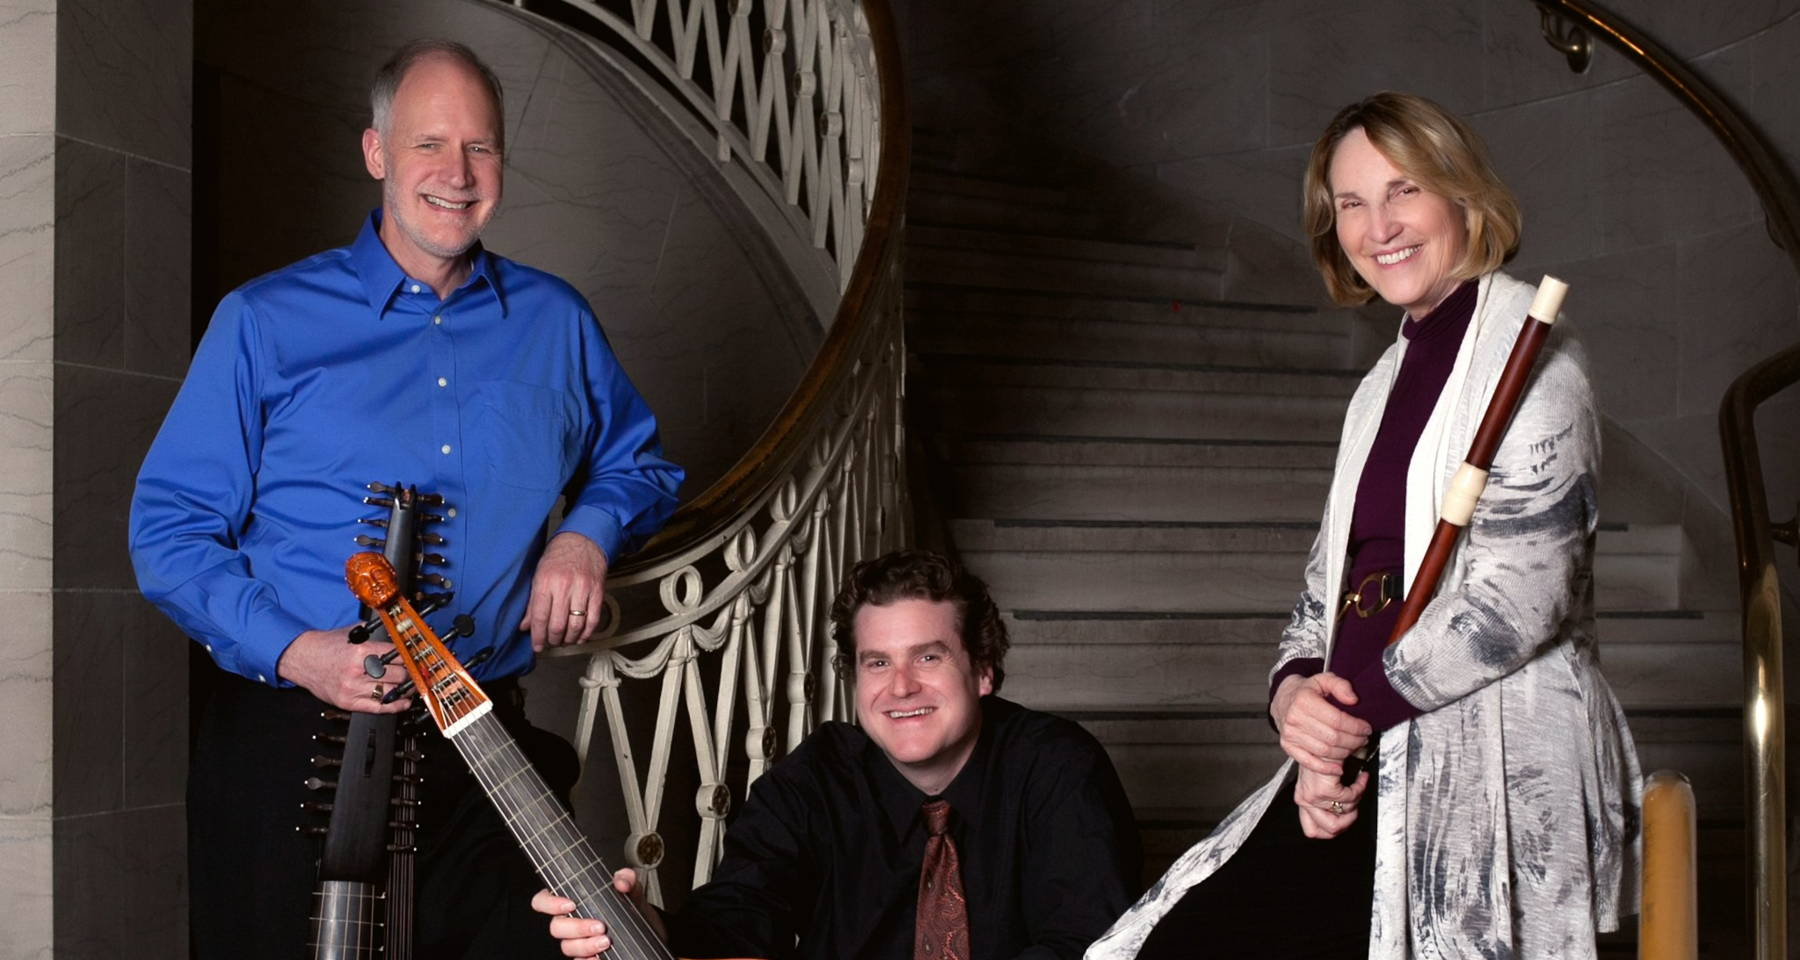 Grounds Abound: Entwyned Early Music Plays Catchy Chords and Righteous Riffs from the 16th & 17th Centuries